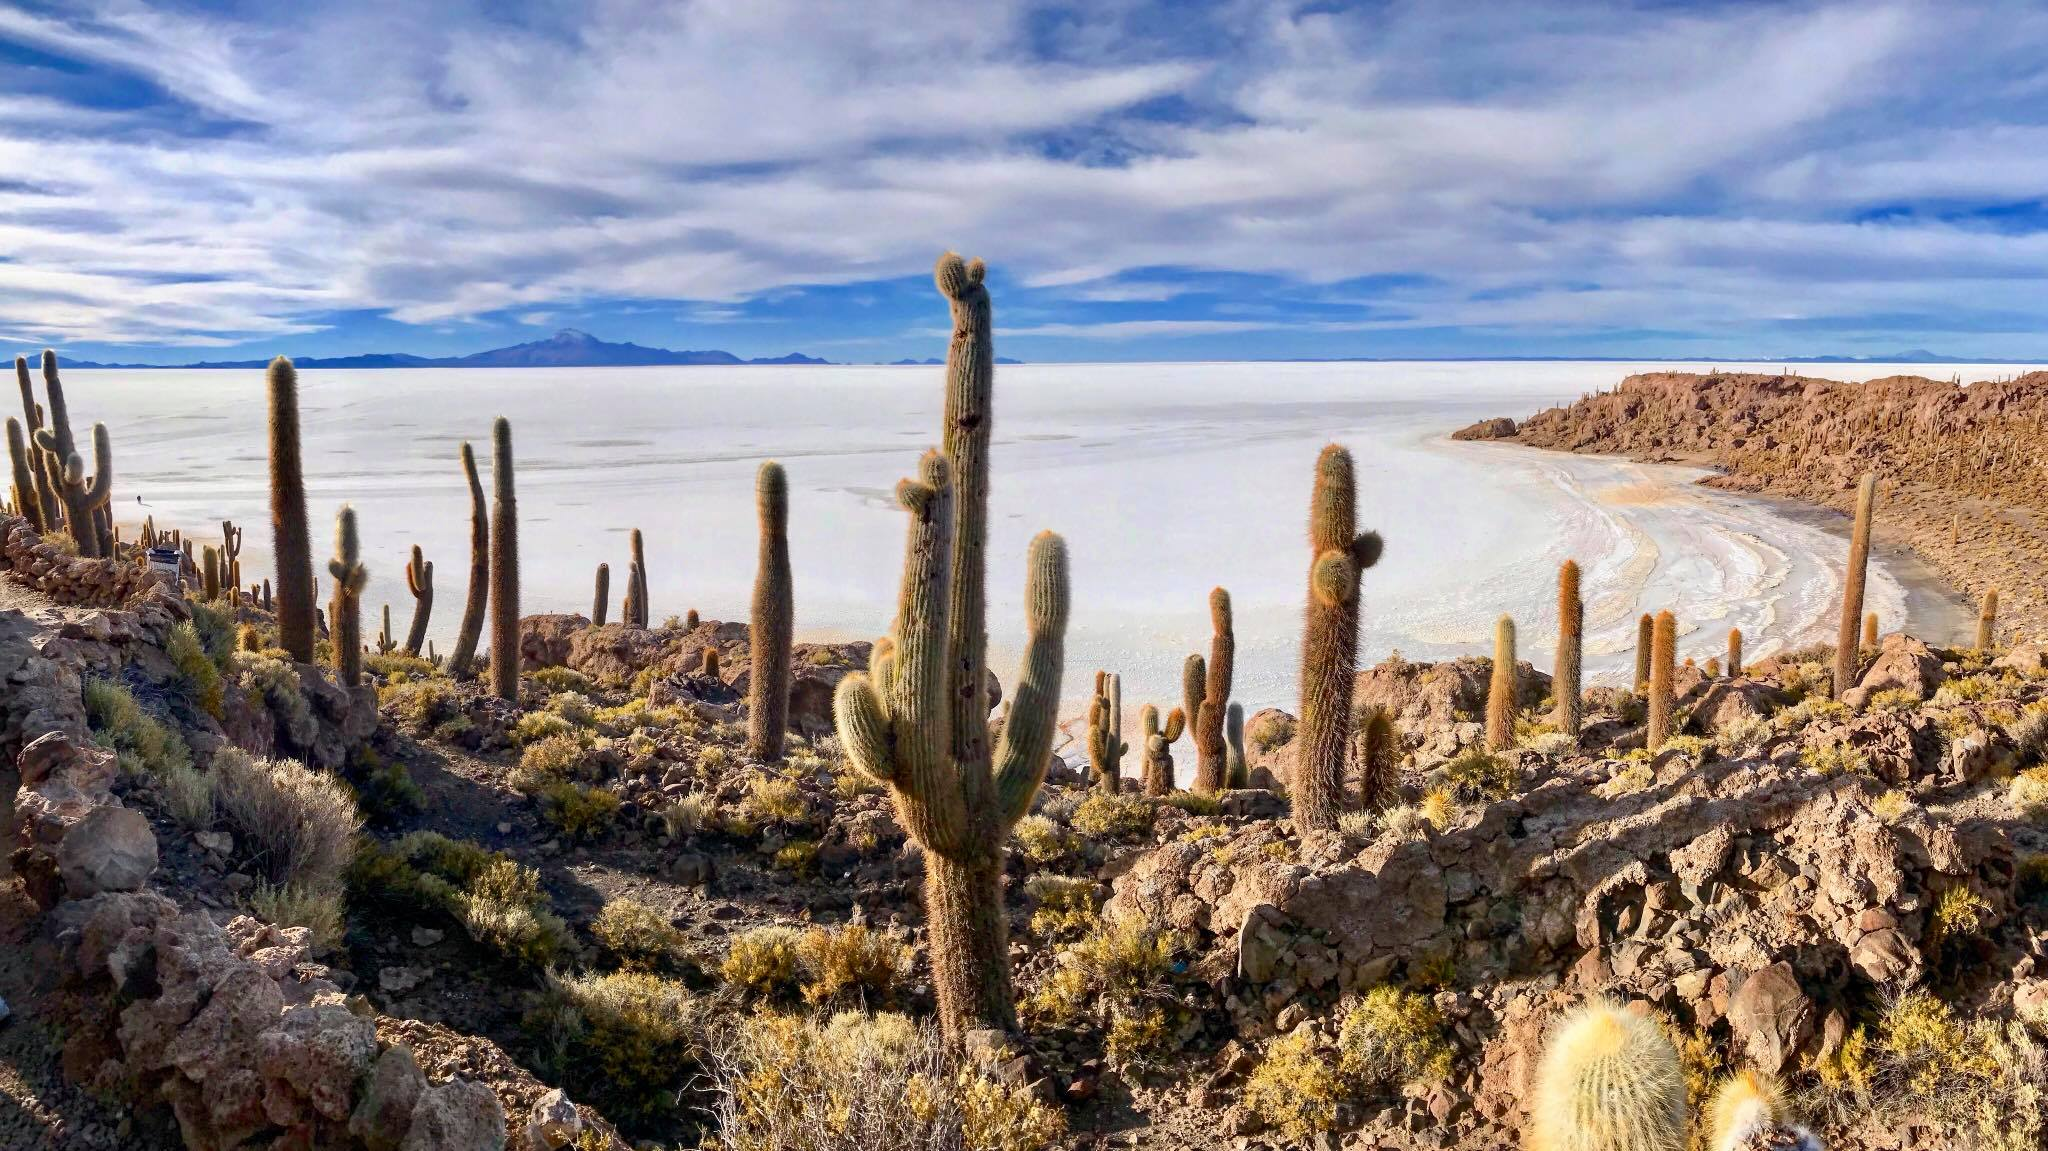 Incahuasi Island in the Uyuni salt flats.